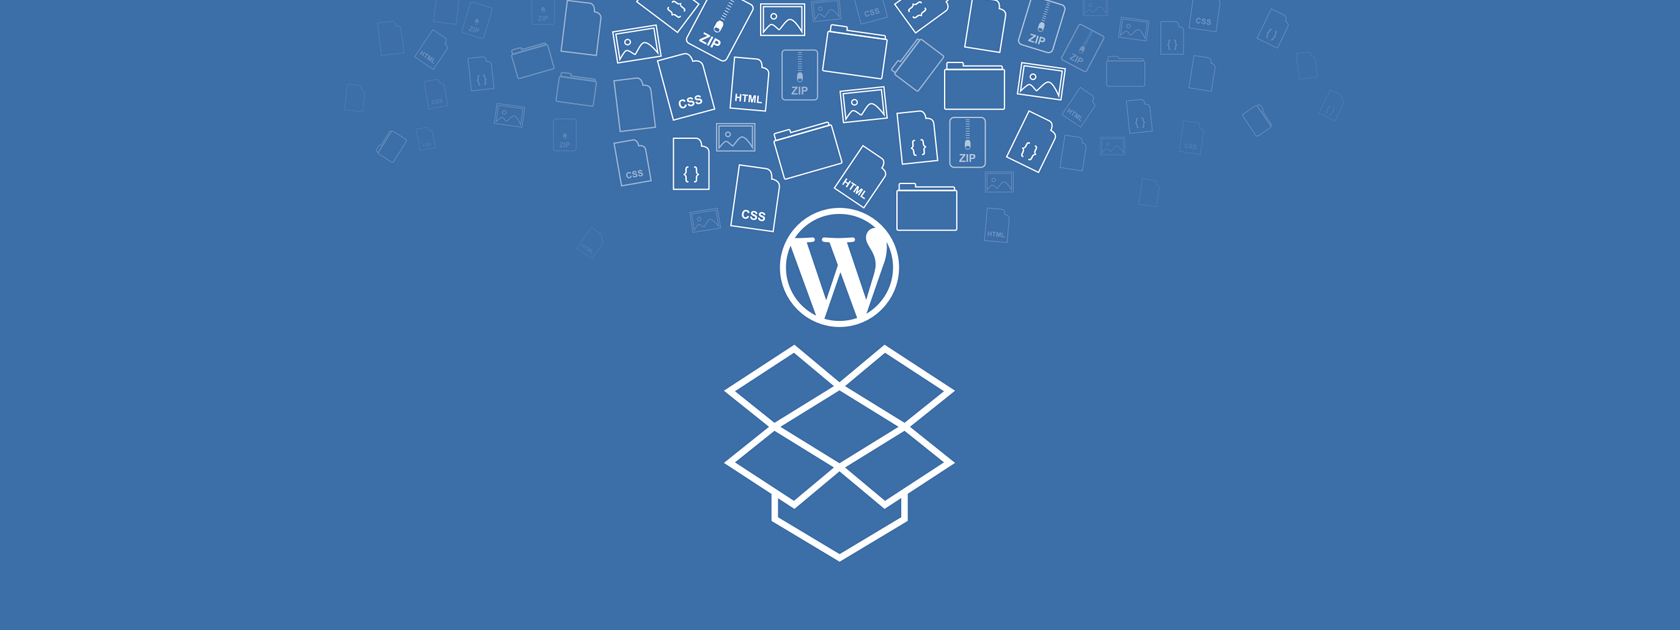 WordPress Dorpbox Yedekleme Eklentisi – Dropbox Backup & Restore